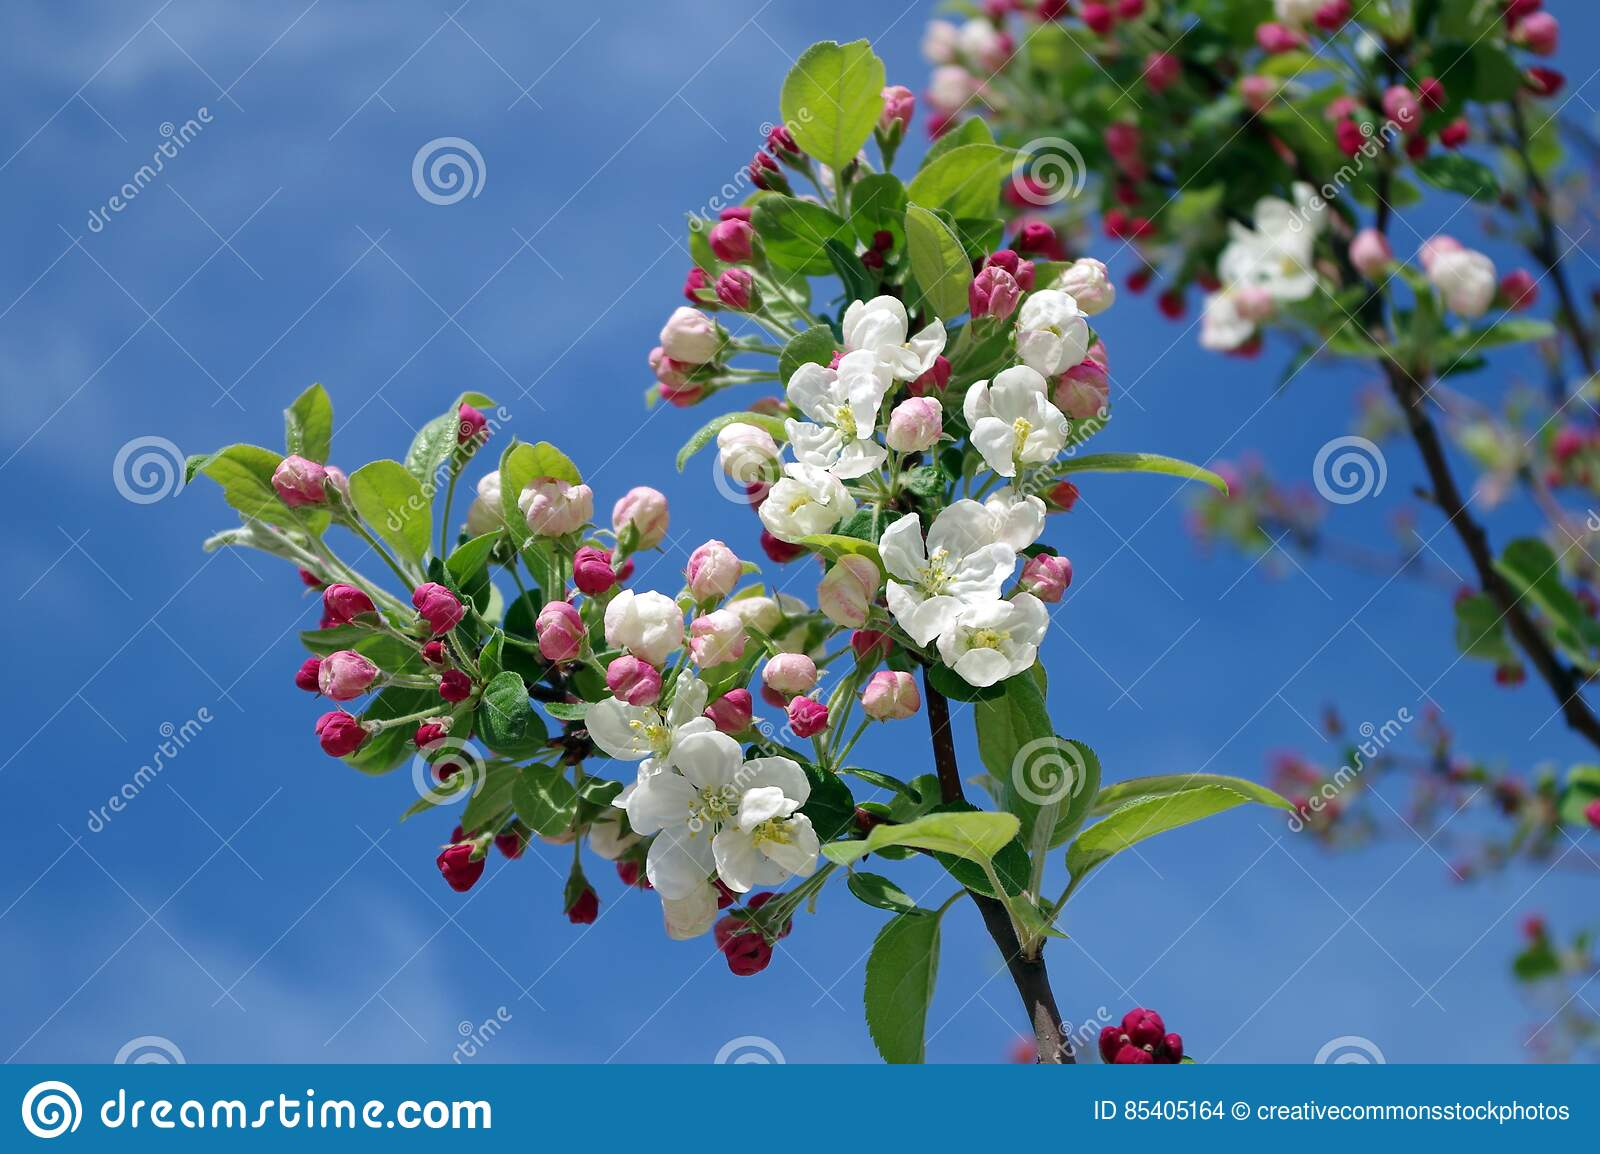 bb9fe7f12ac White Flowers On Black Tree Branch Under Sky During Daytime Picture ...